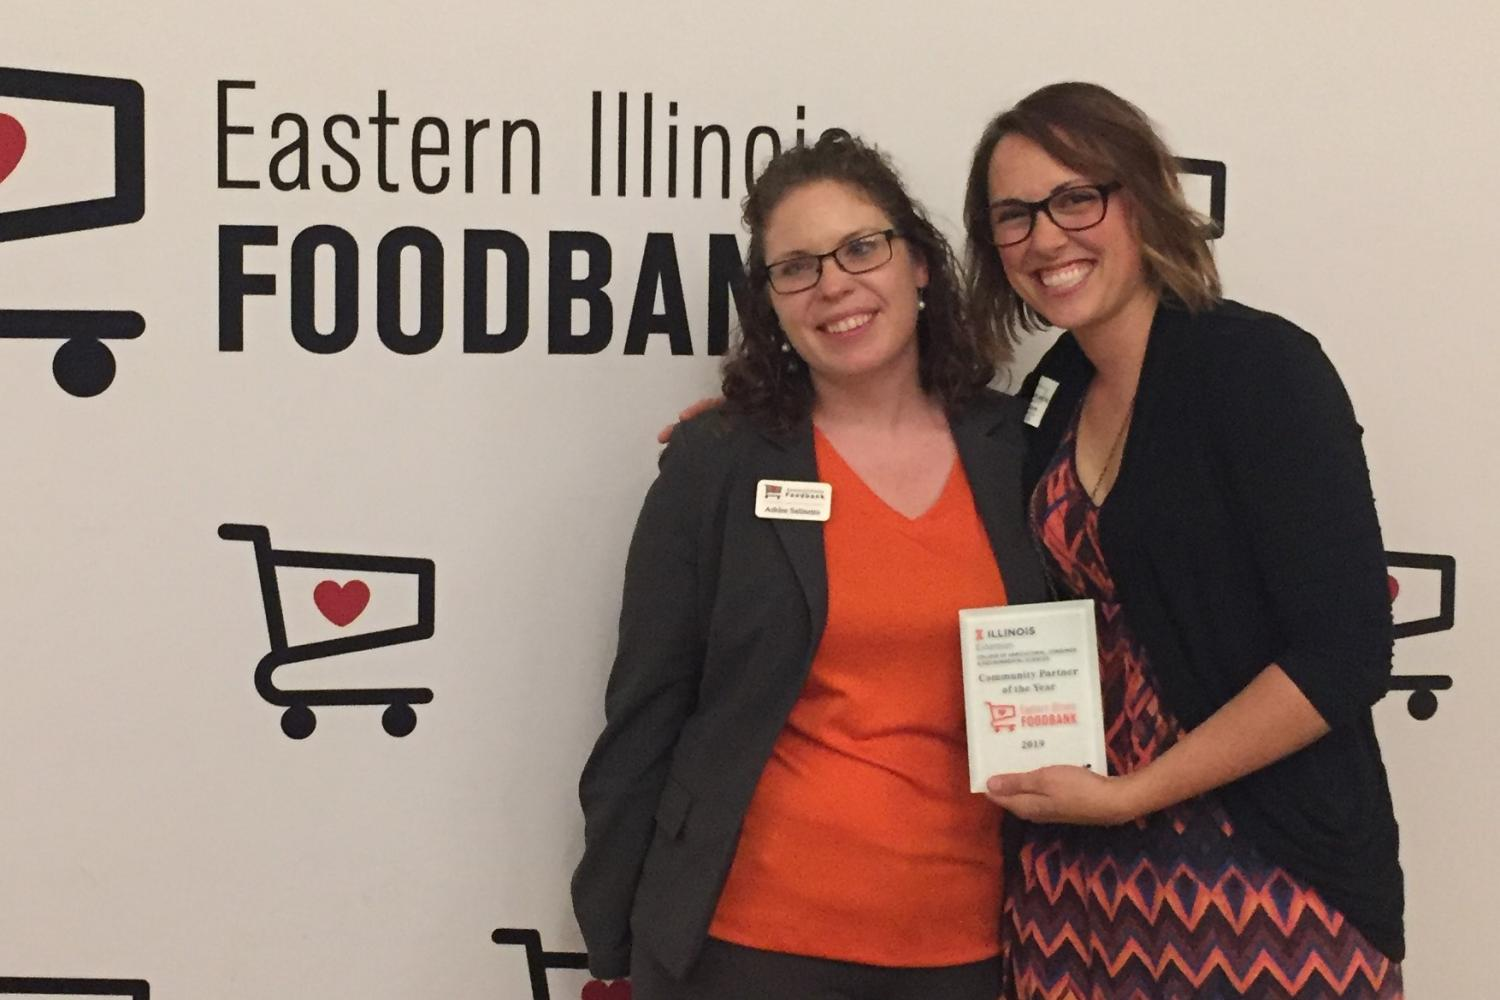 Ashley Salinetro, Partnership Manager at Eastern Illinois Foodbank with Caitlin Kownacki, University of Illinois Extension specialist